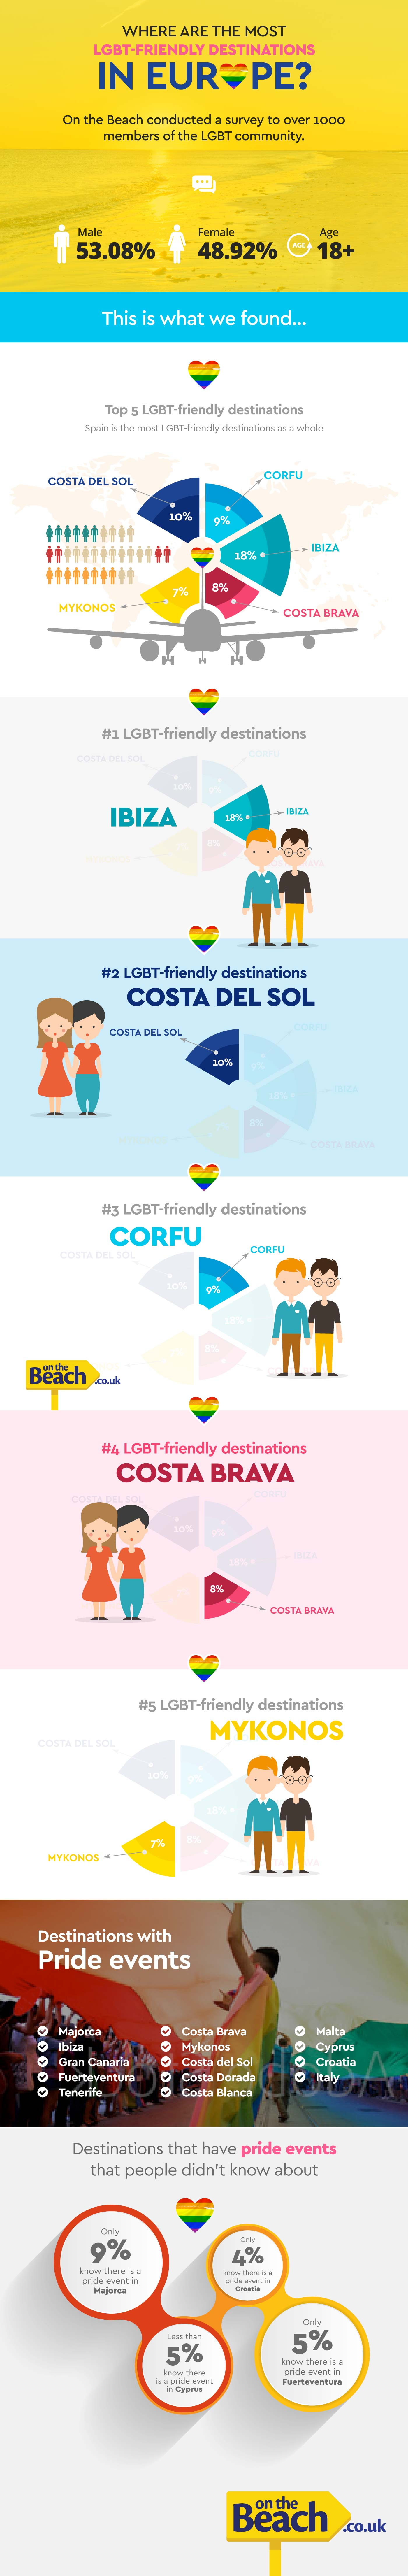 LGBT-friendly destinations infographic